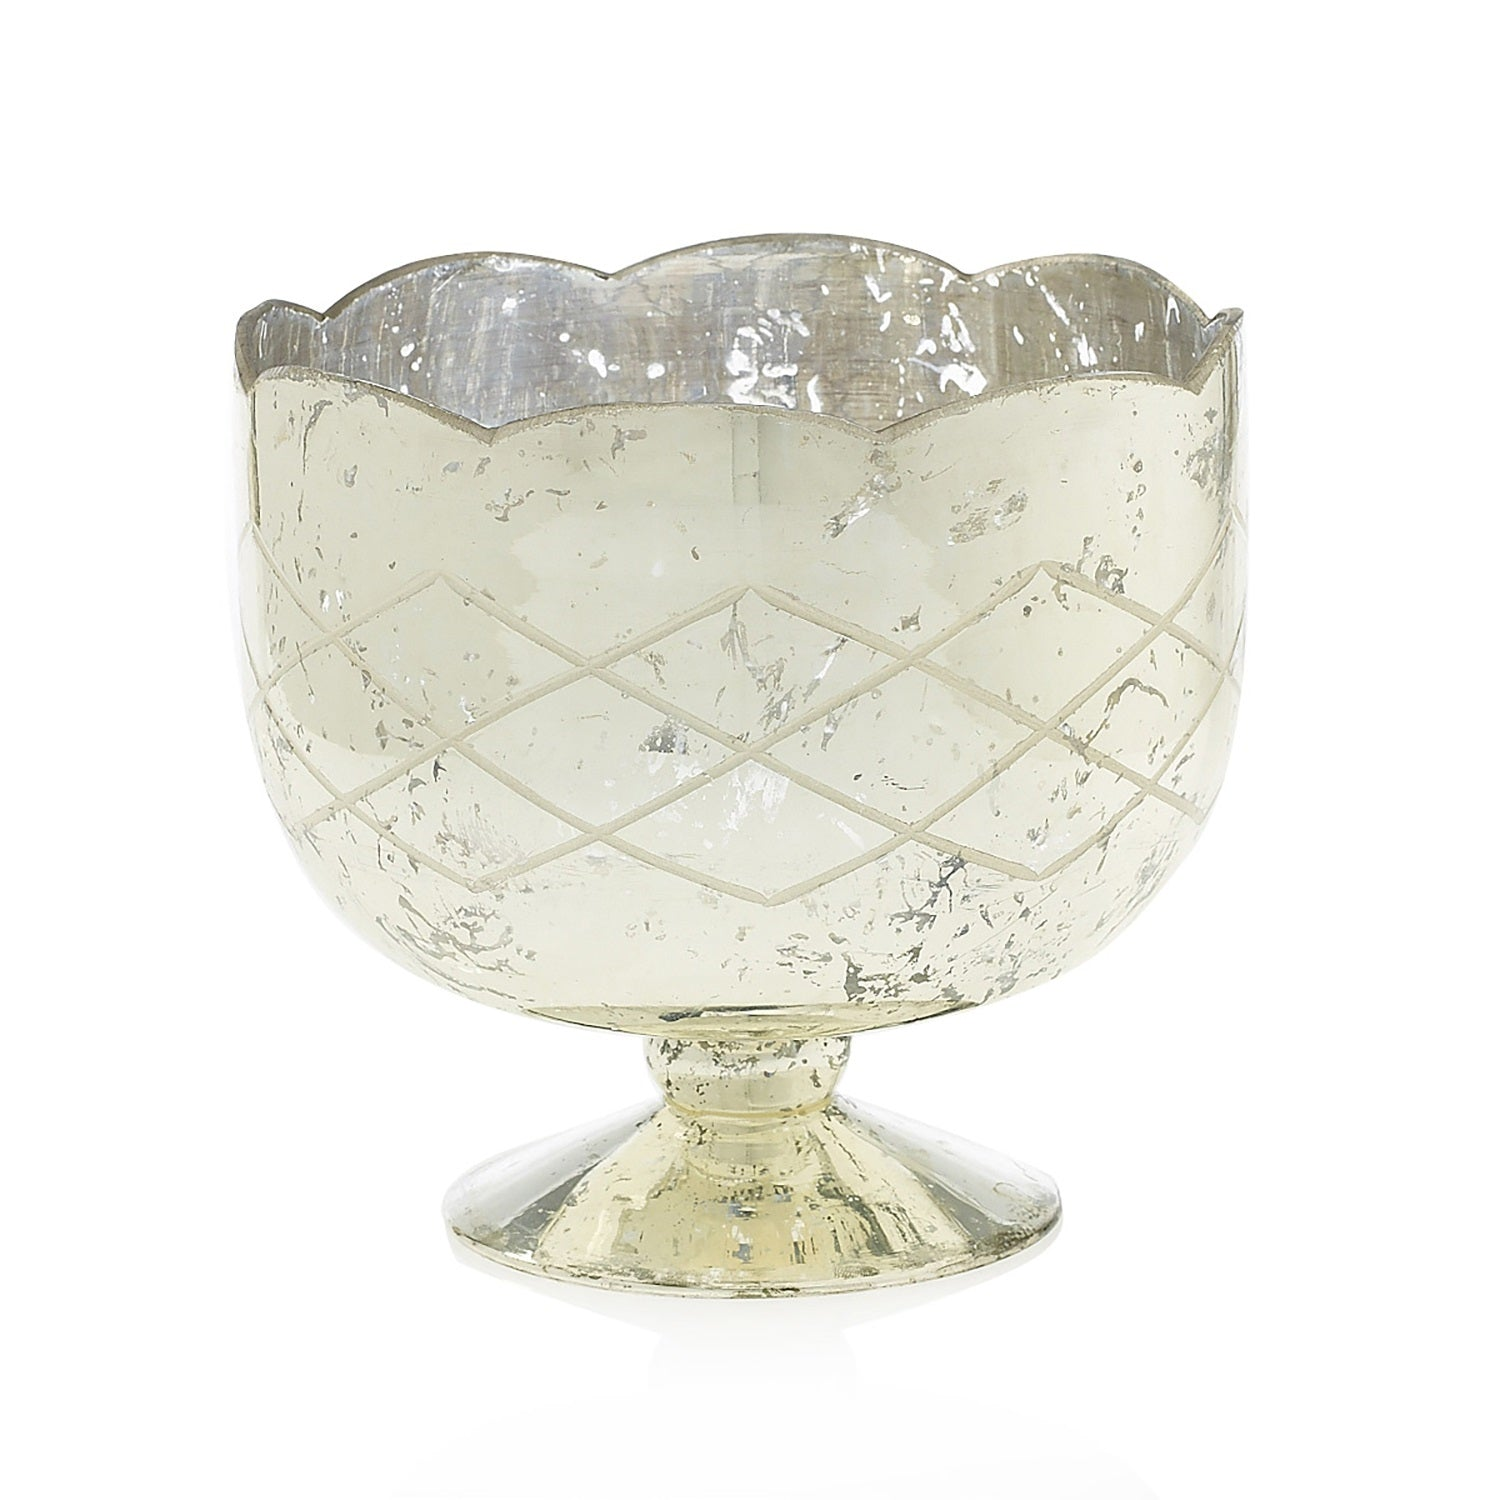 The Scalloped Pedestal Bowl, Small